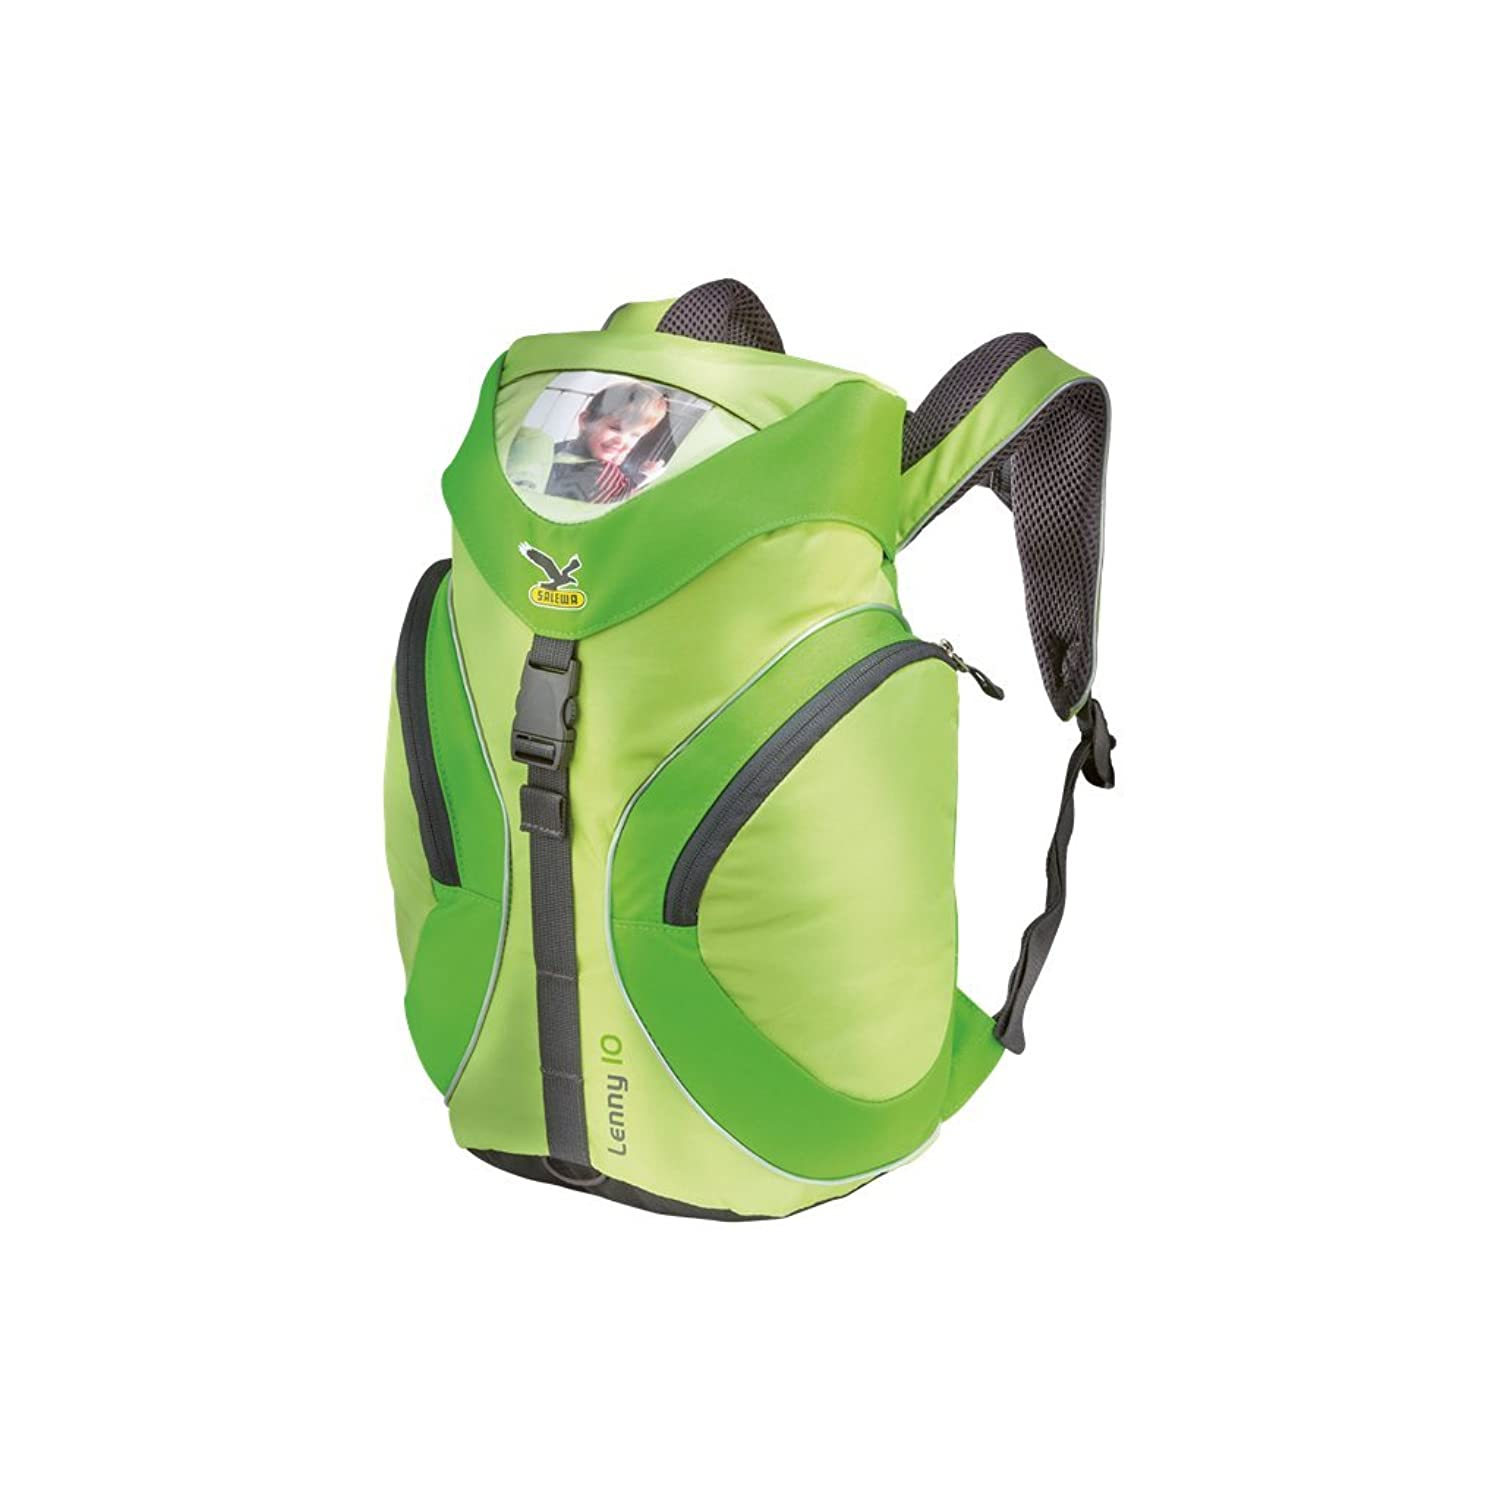 где купить  Salewa Lenny 10 Bp Children's Rucksack  дешево